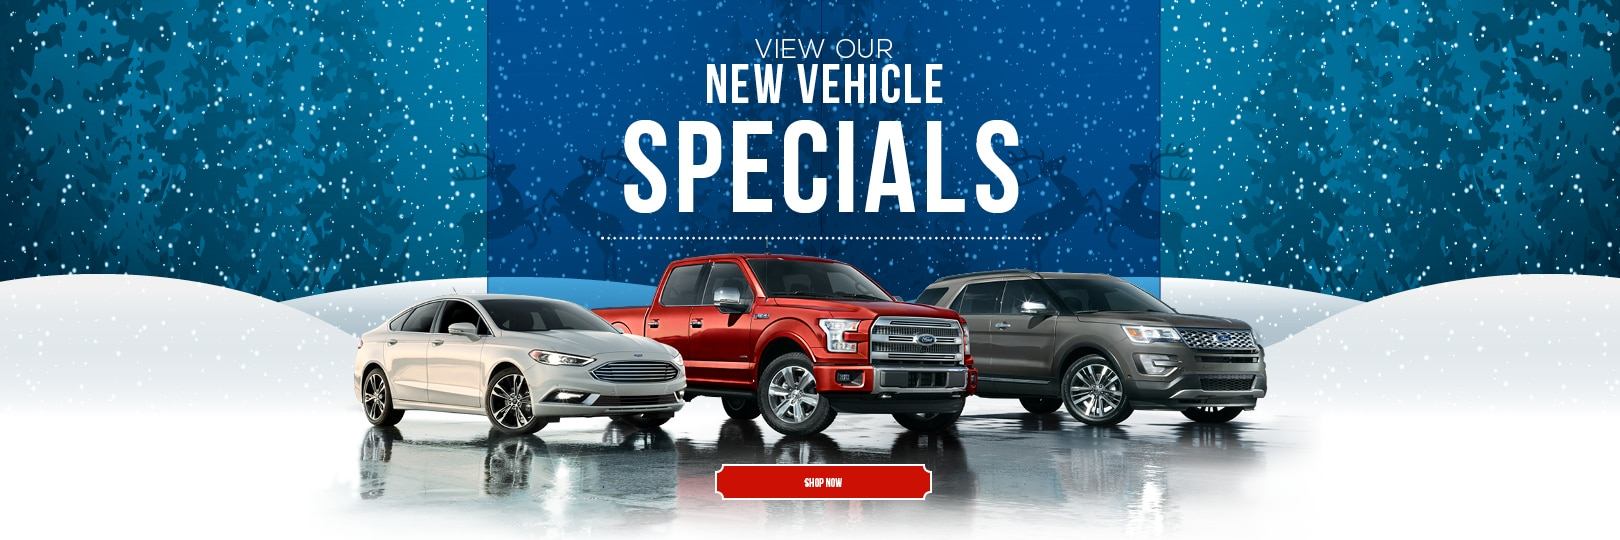 Colonial Ford Danbury Ct >> New 2017 & 2018 Ford Dealer   Colonial Ford in Danbury, CT